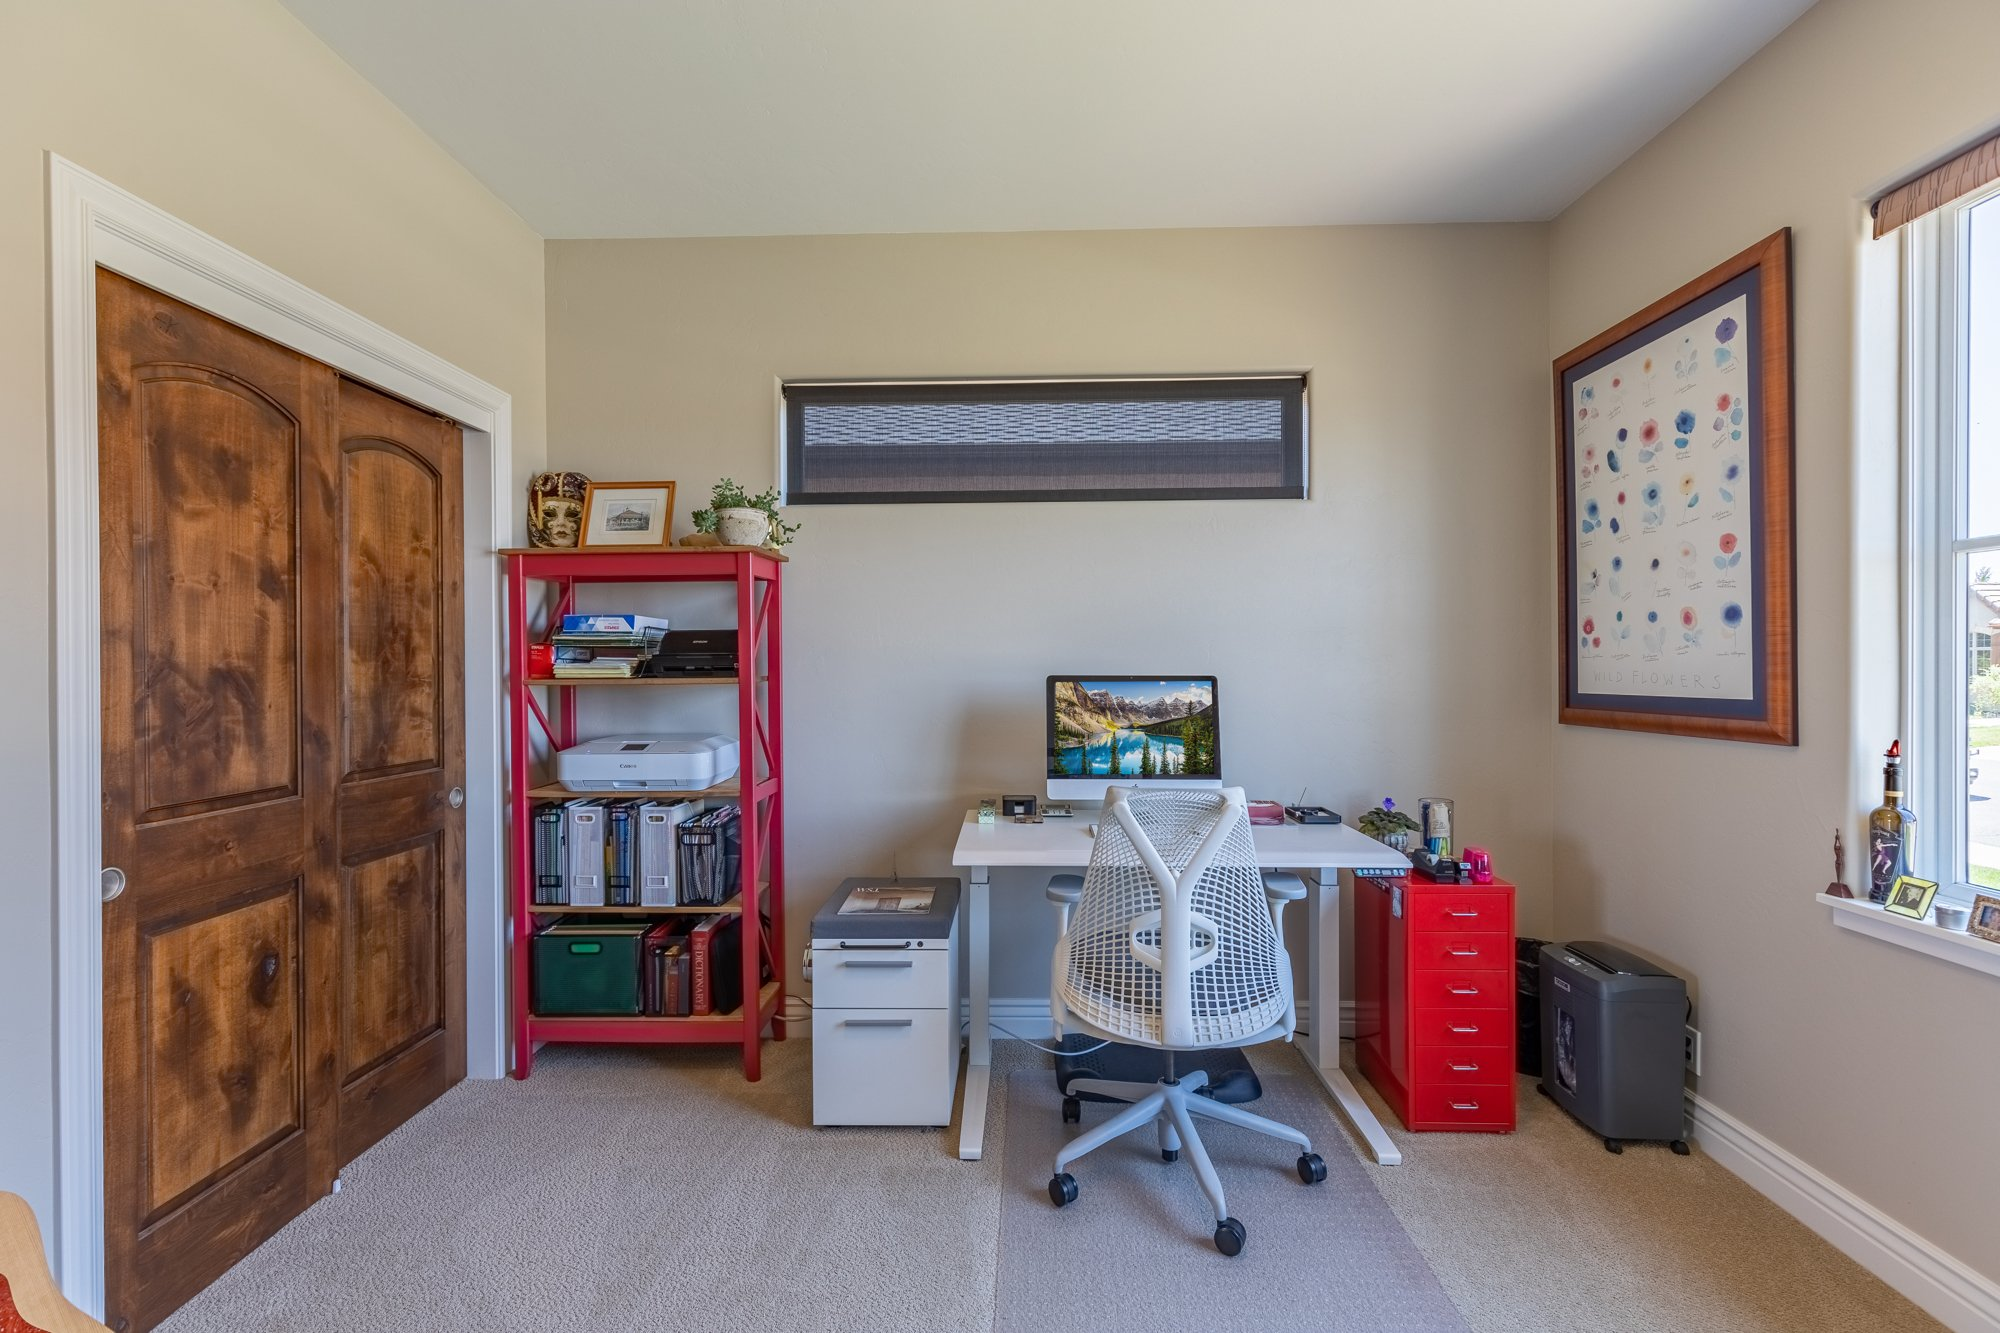 Bedroom/ Office with High Window - 2927 Sleeping Bear Rd Montrose, CO 81401 - Atha Team Real Estate